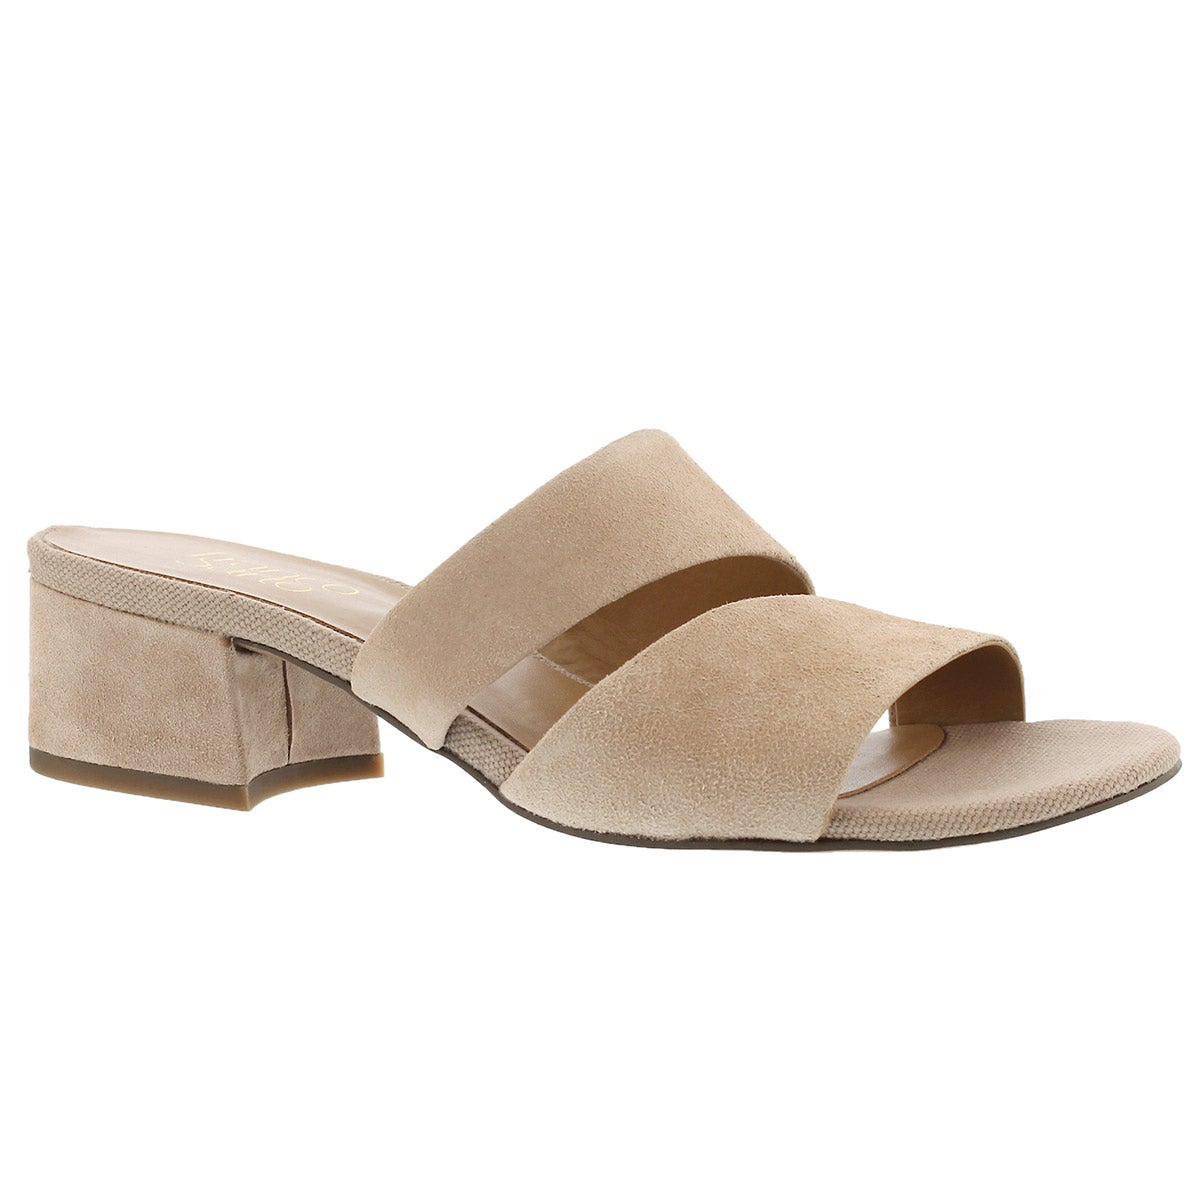 Women's TALLEN light blush slide dress sandals